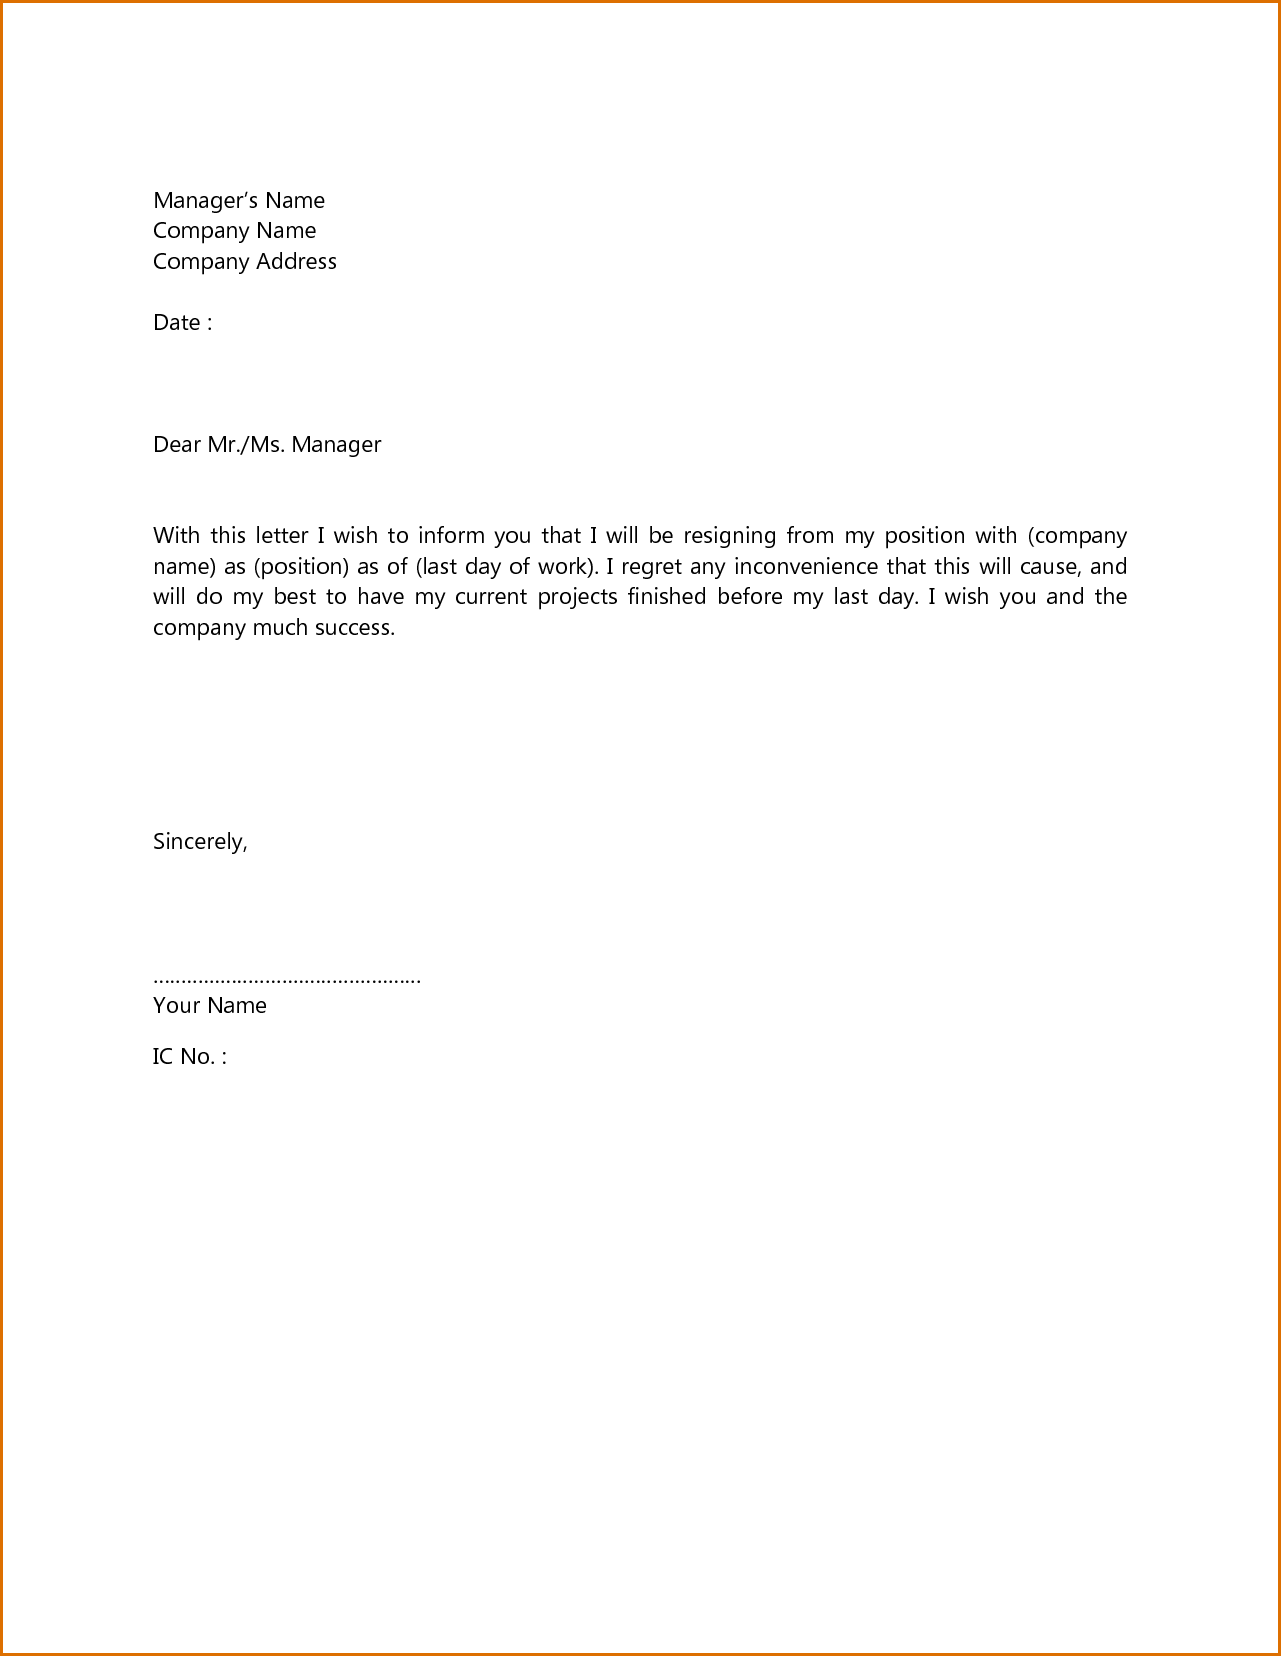 Simple format of resignation letter resume layout 2017 simple format of resignation letter resume layout 2017 aljukfo Gallery